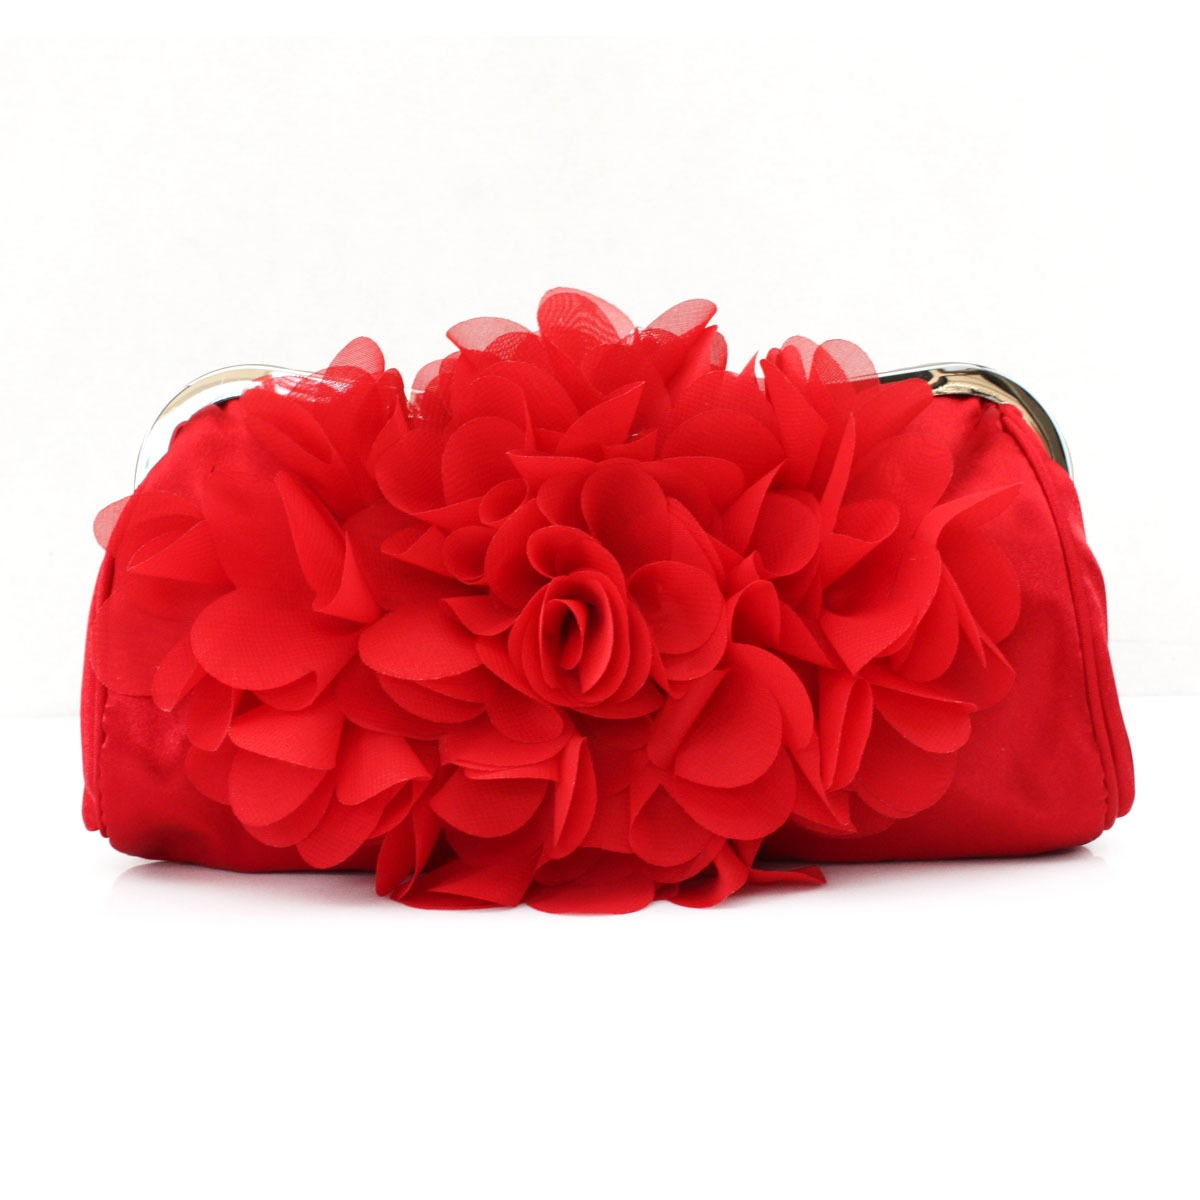 Ericdress Silk Floral Design Evening Clutch